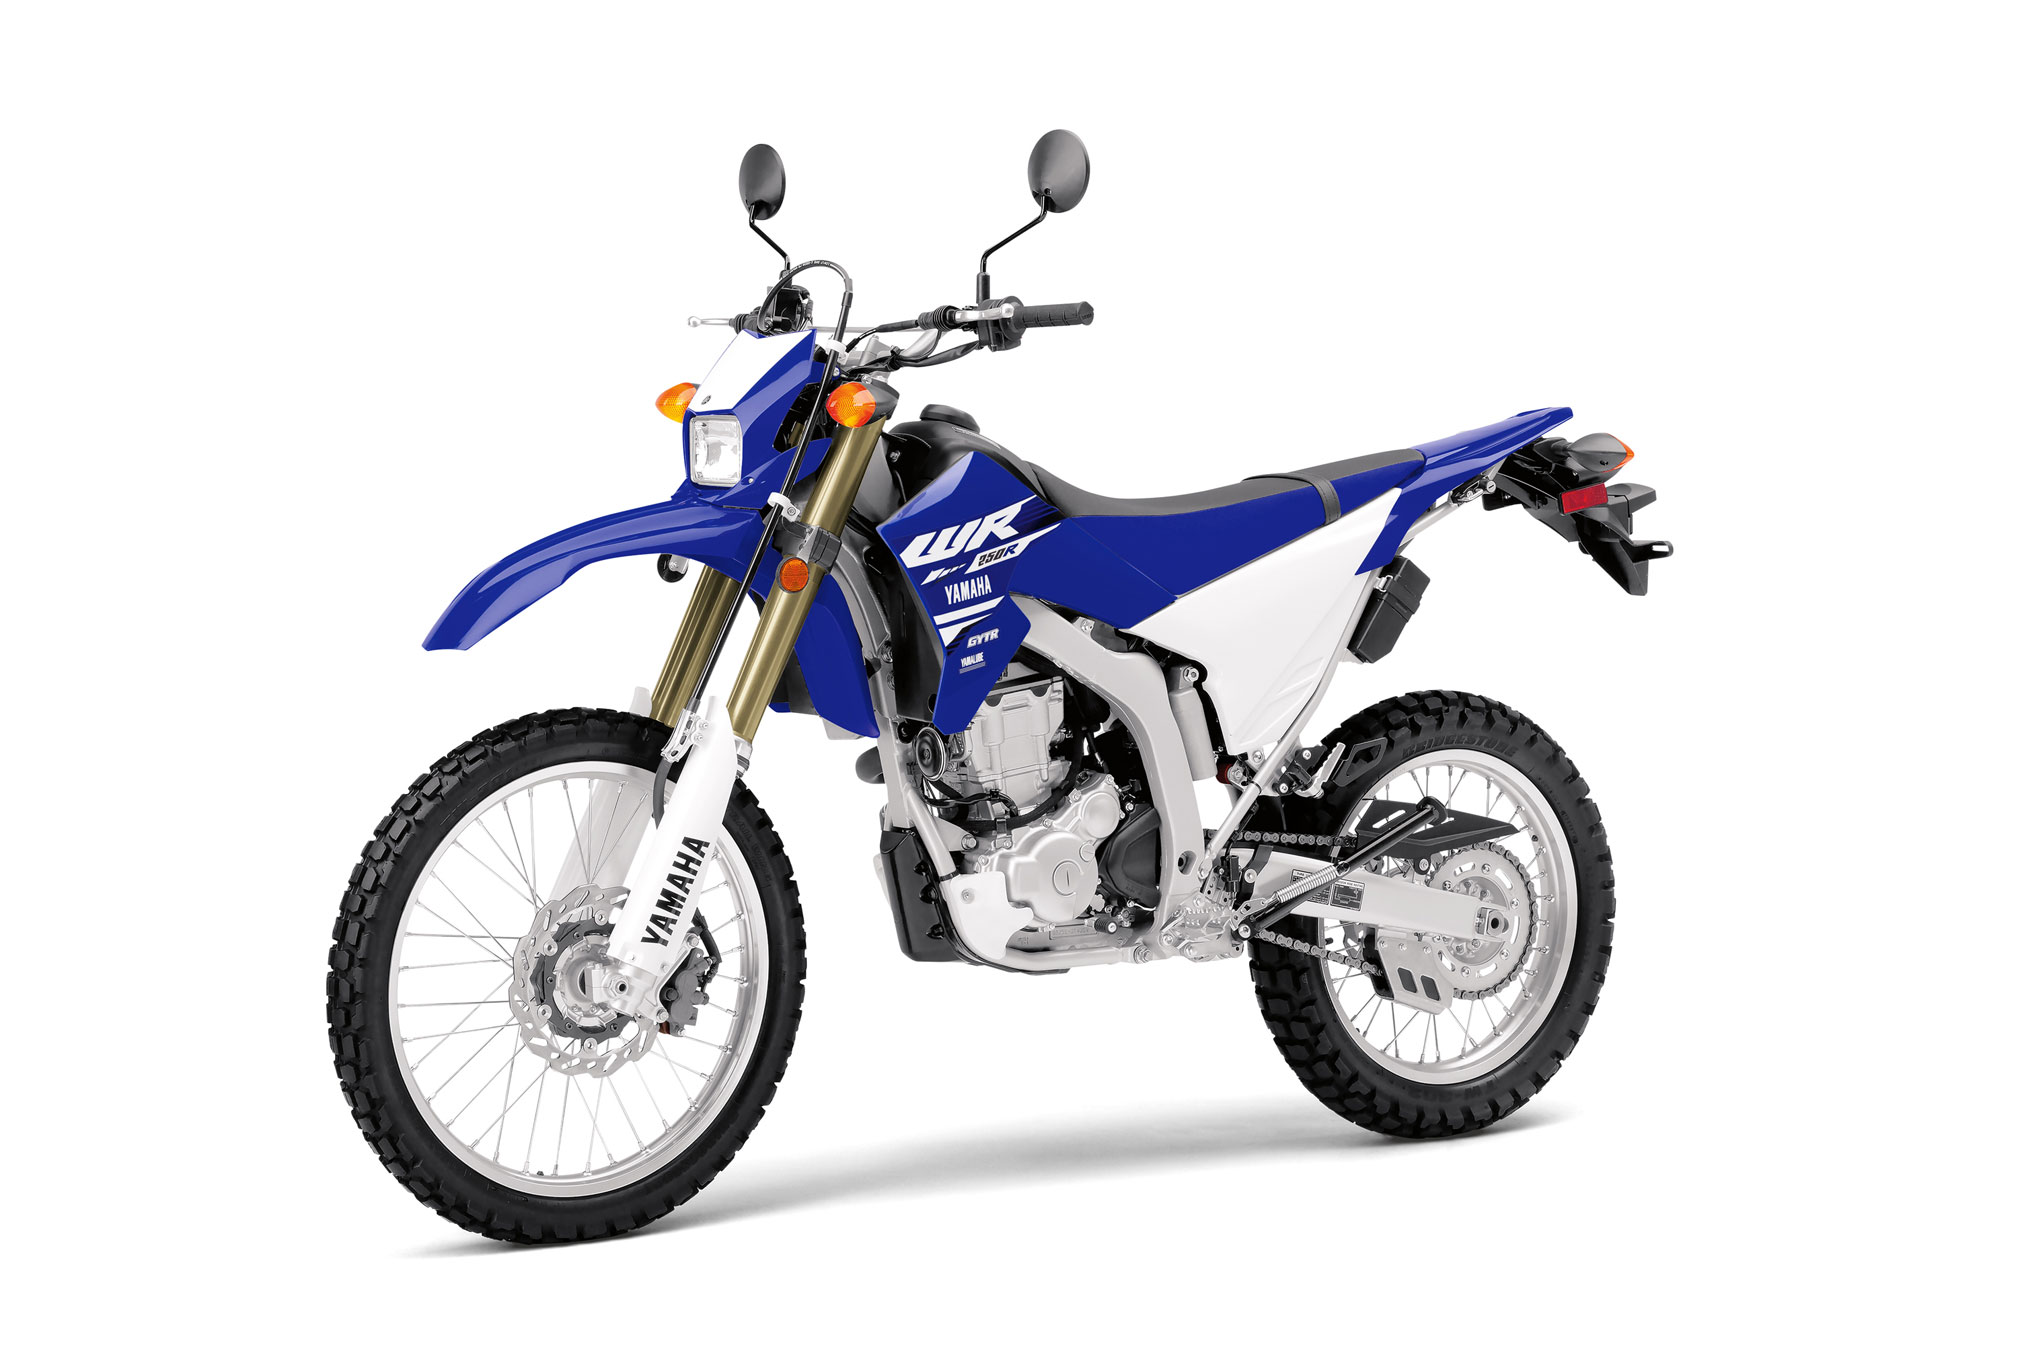 2018 yamaha wr250r review totalmotorcycle for Yamaha sport bikes models